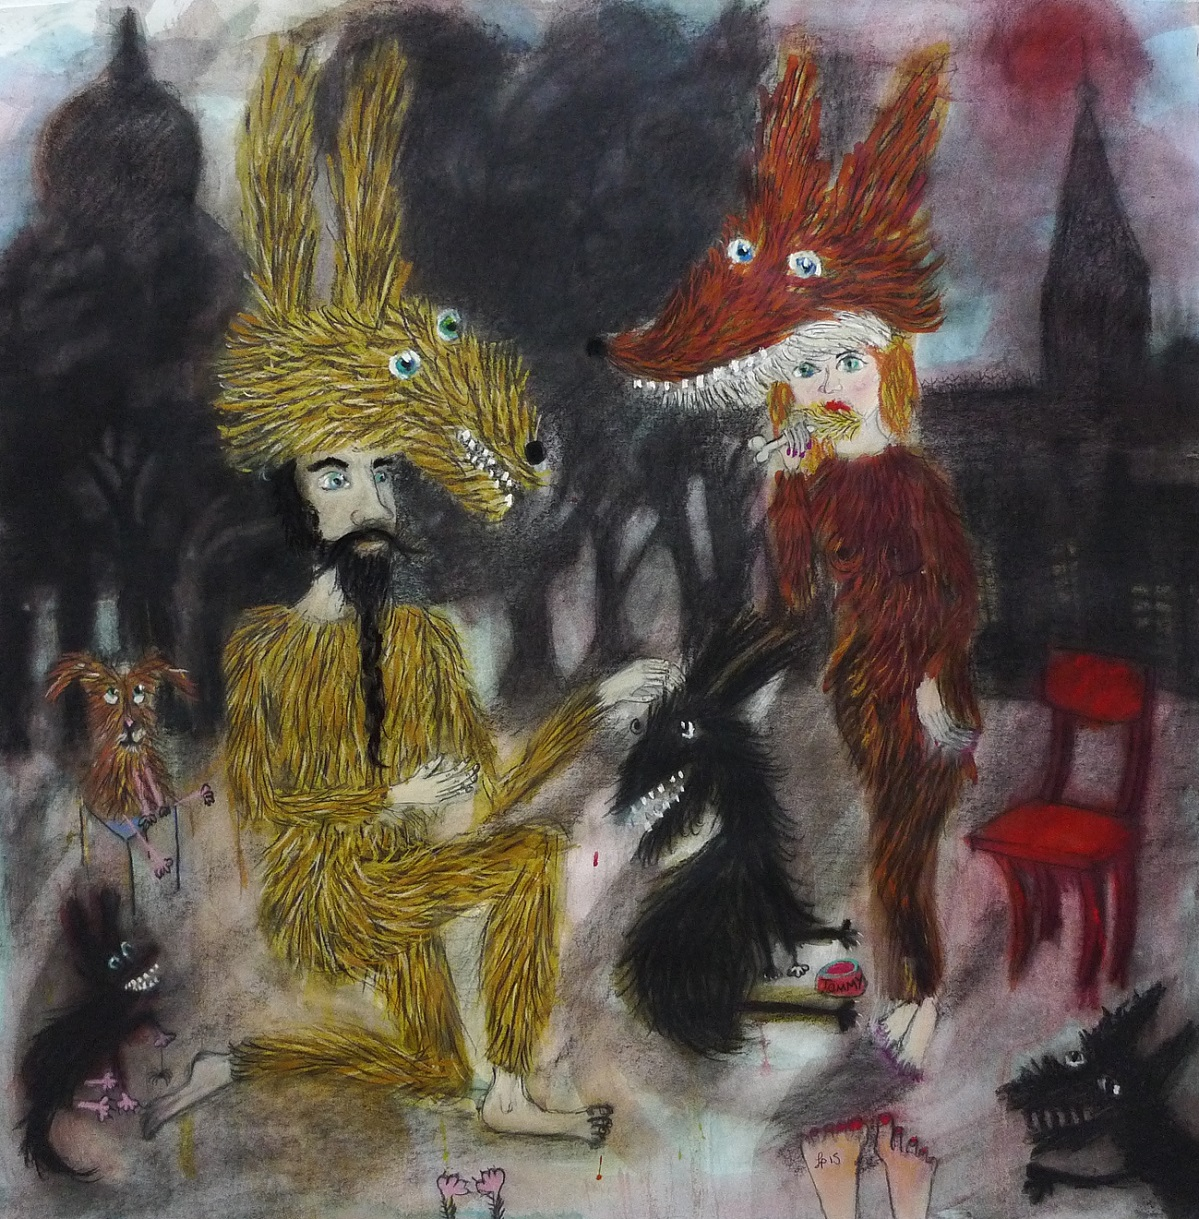 Mr-Hare-and-His-Pet-Dogs-Sid-Clarence-and-Porky-Conte-on-Paper-80-x-80-cm-2015.jpg